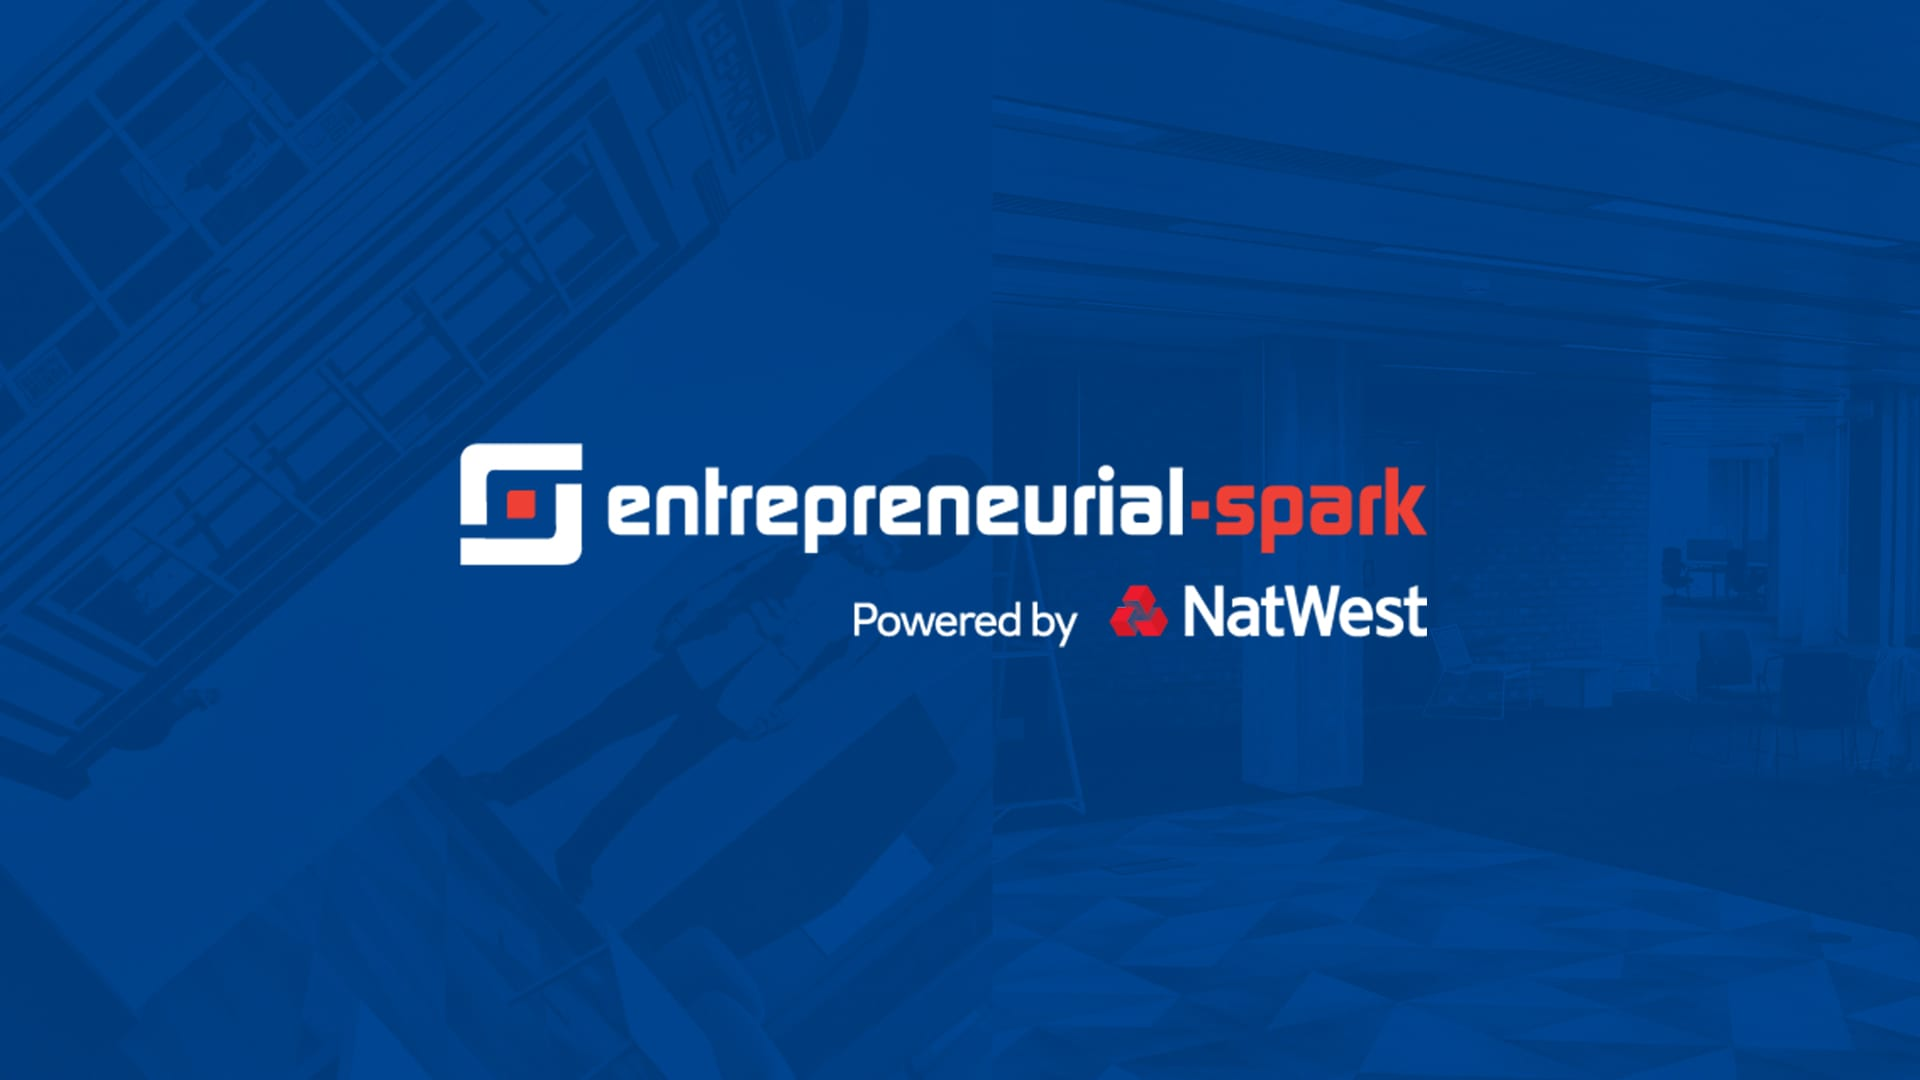 Entrepreneurial Spark Powered By Natwest Logo